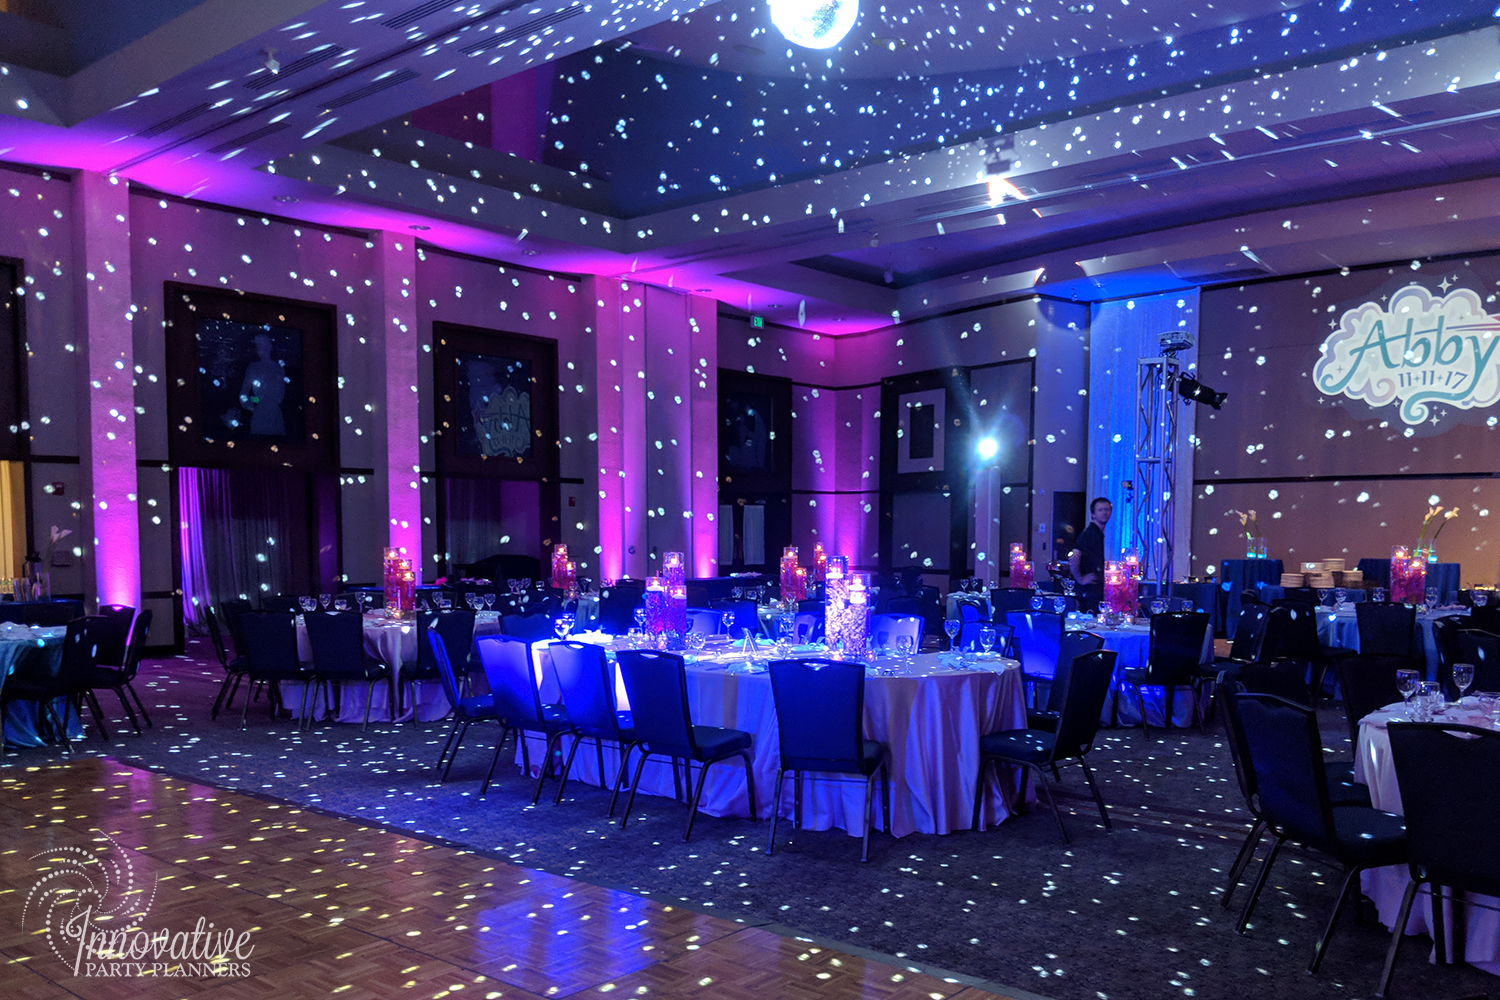 Starry Night, Make a Wish - Bat Mitzvah Celebration